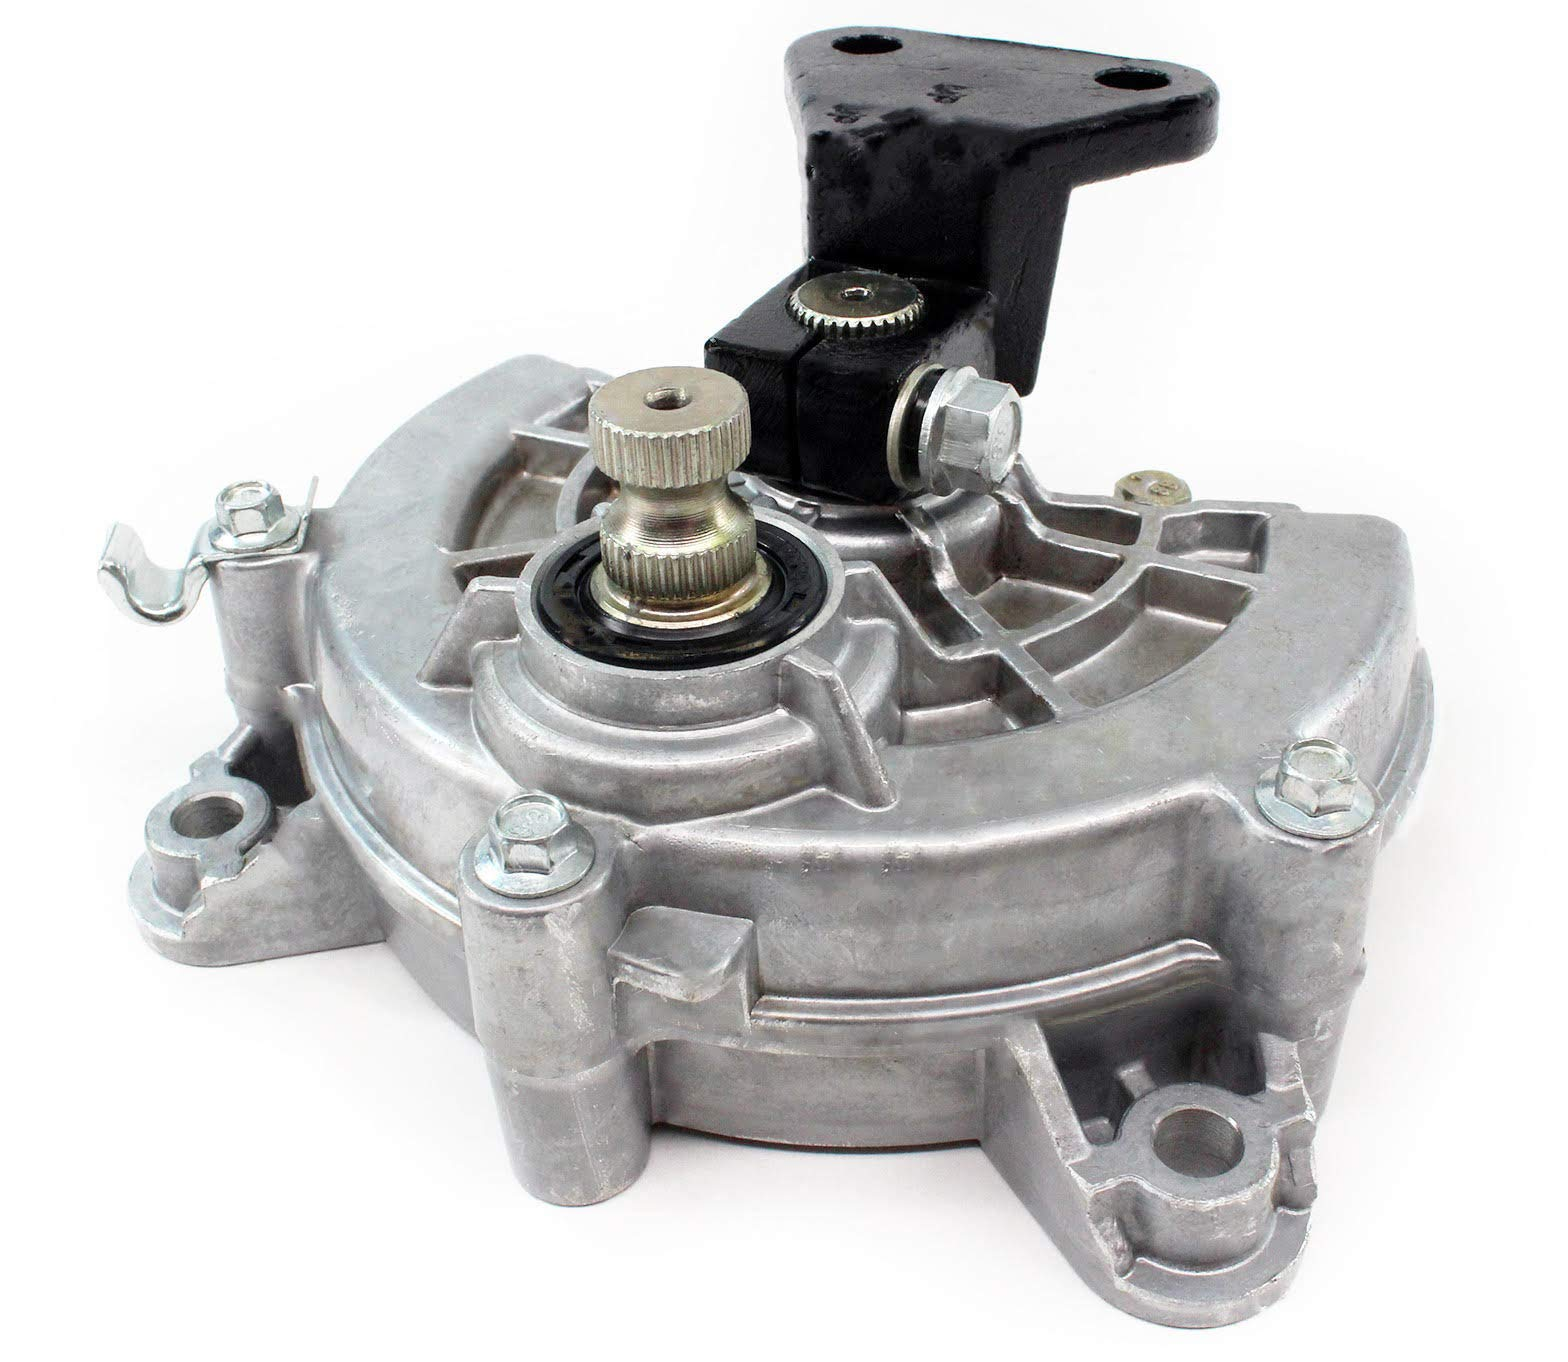 Steering Gear Box Fits Polaris RZR-170 RZR 170 Replaces 0454896, 0455048